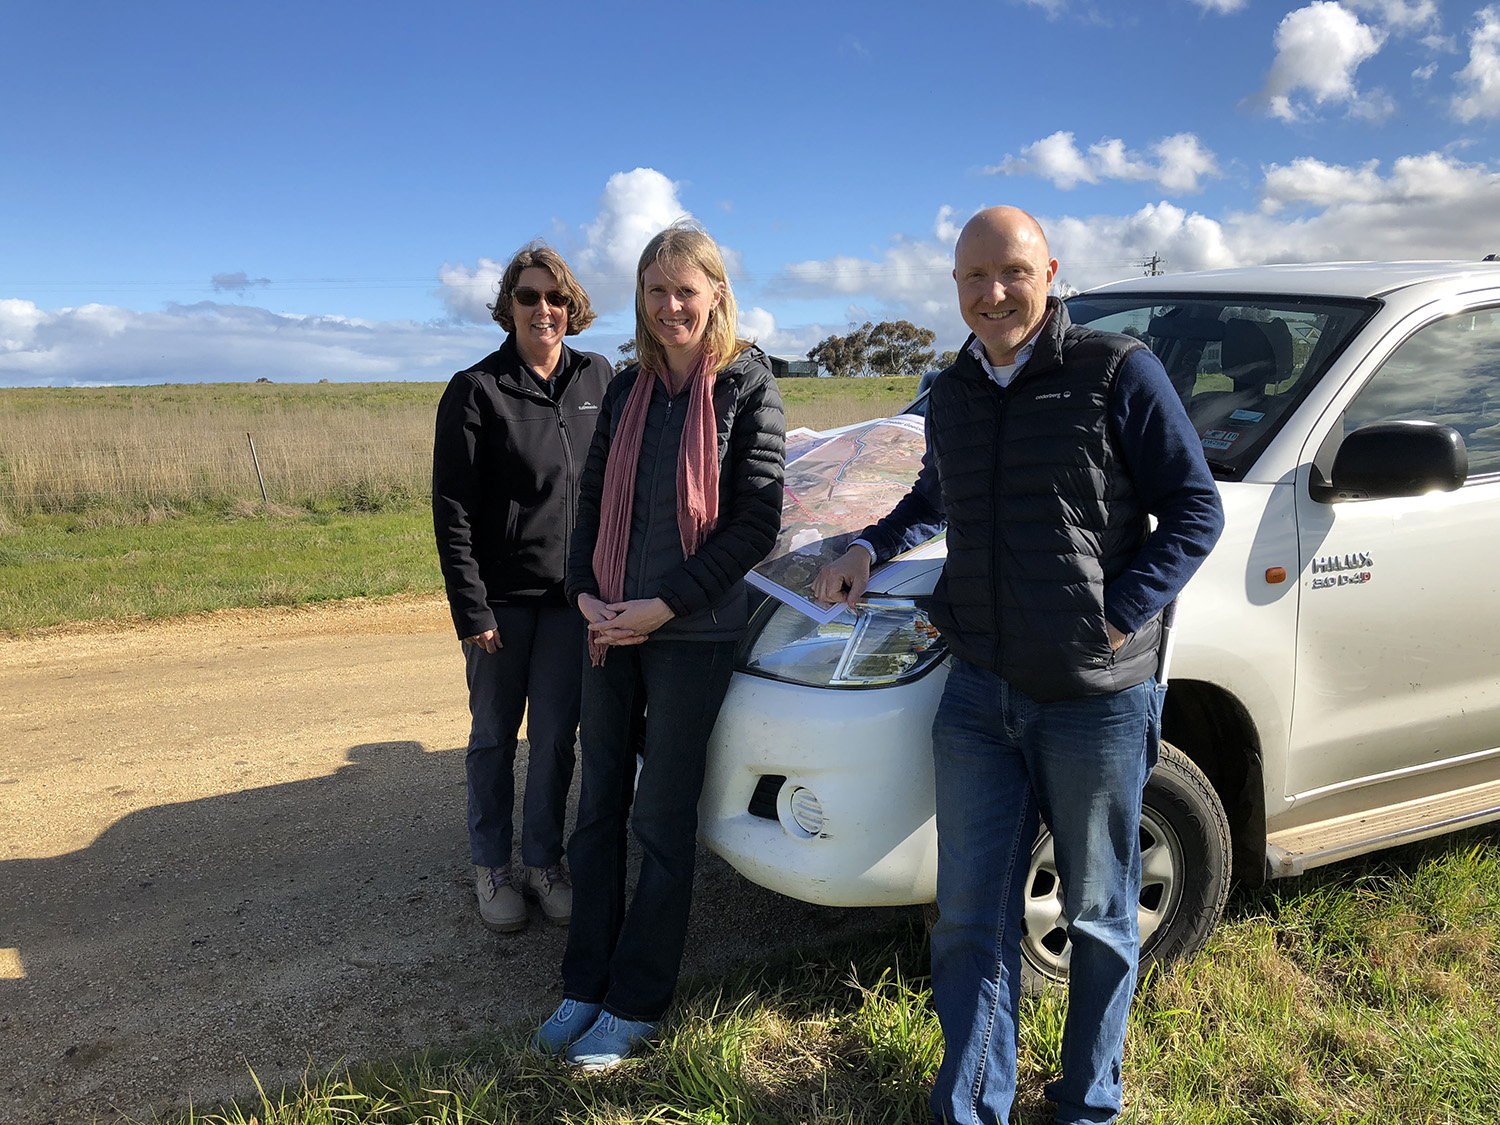 Learning about plans for the Lower Barwon floodplain from left Donna Smithyman City of Greater Geelong, Jenny Emeny, Warrnambool City Council and Trent Wallis, RMCG (3 Sep 2018). Photo credit: Jaclyne Scally